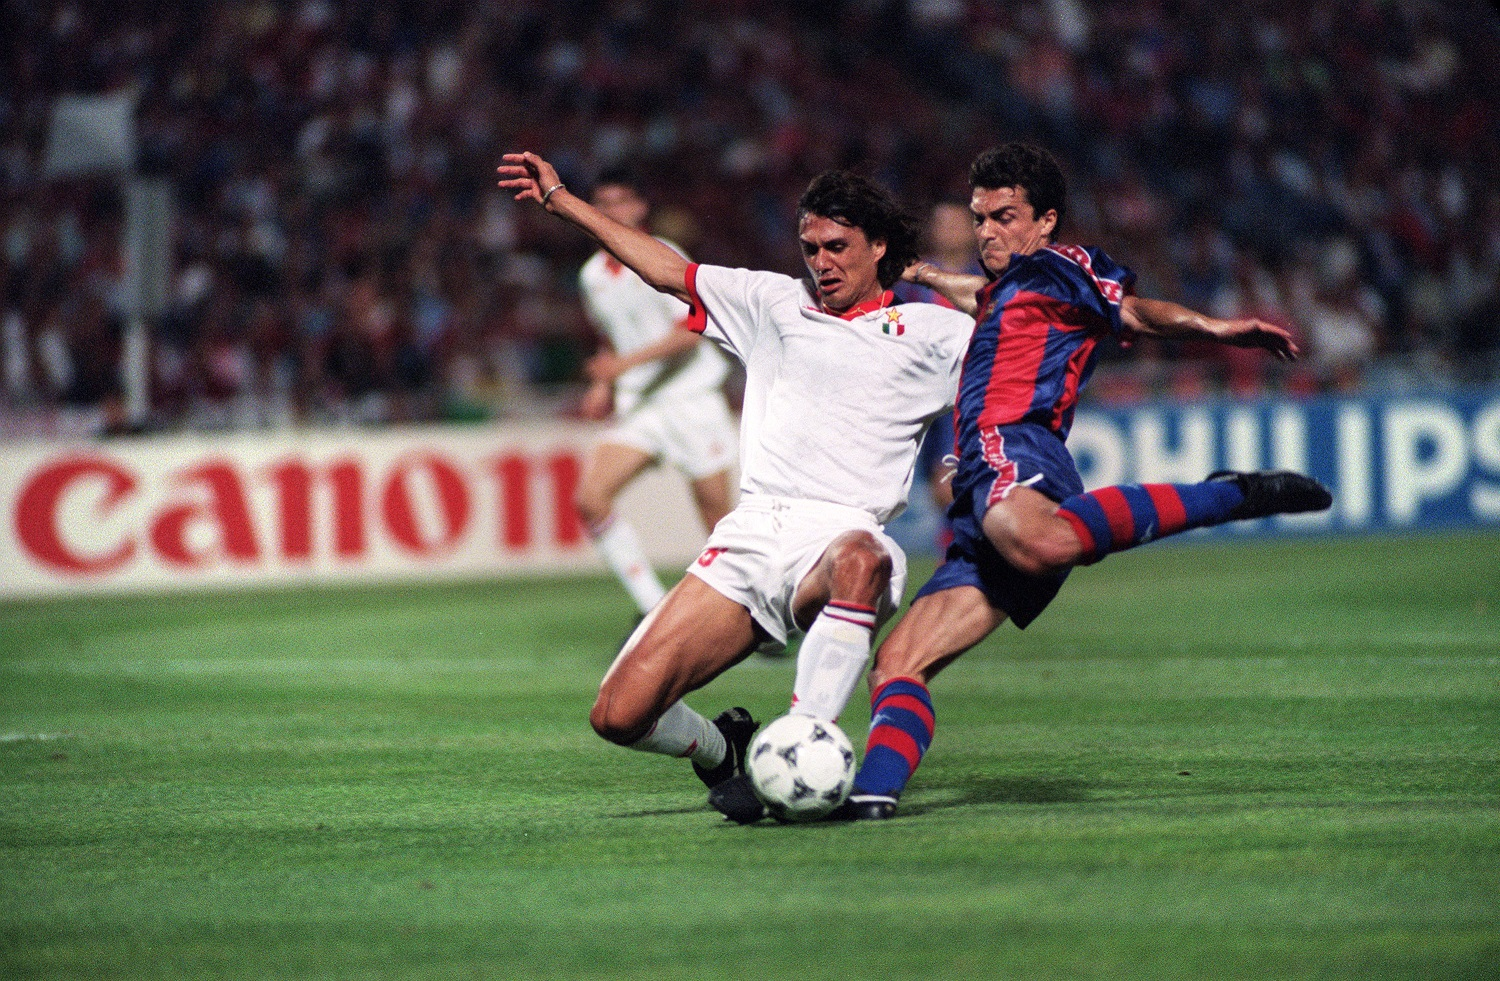 Final de Champions League entre el Milan y el Barcelona, en 1994.